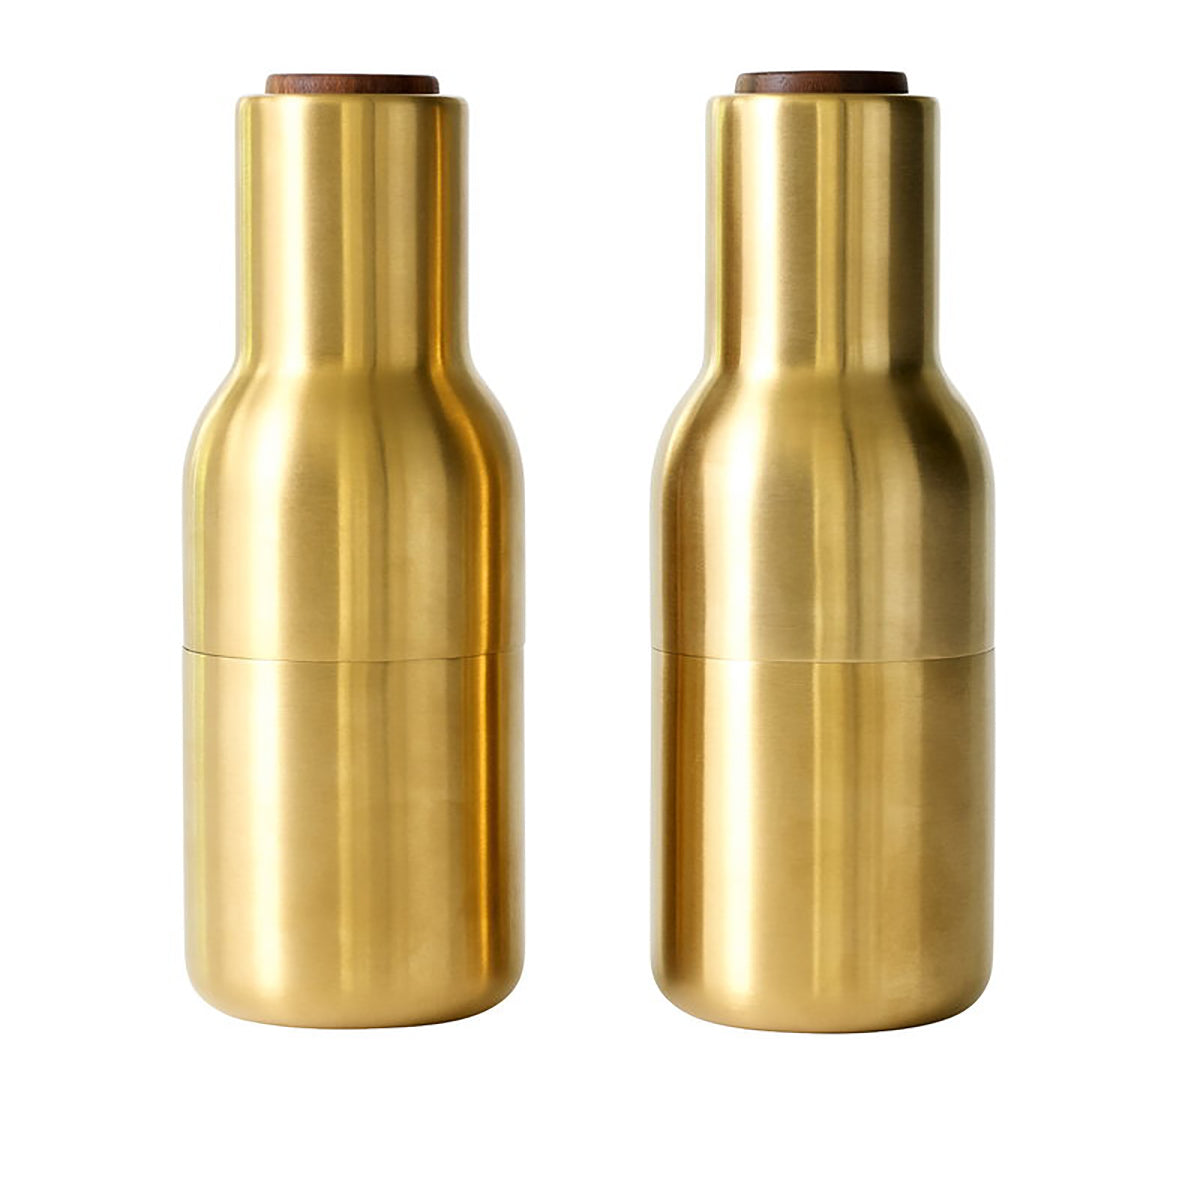 Bottle Grinder Brushed Brass with Walnut / Set 2